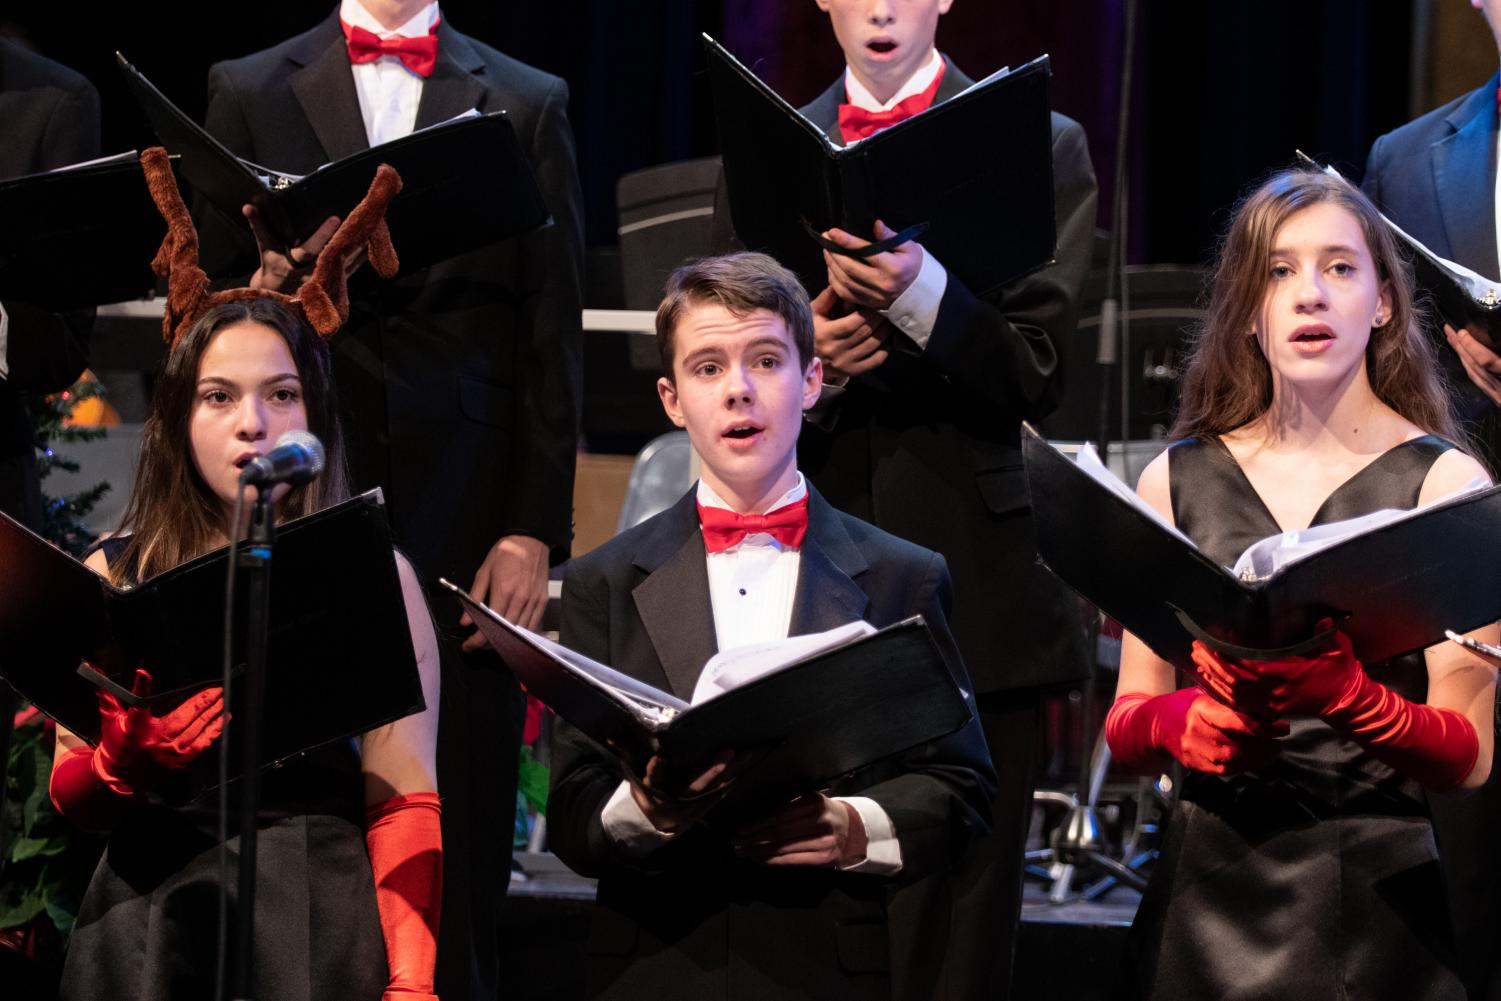 Choir performs Christmas favorites at their recent concert. The many performing groups of Loyola will put on a concert full of Christmas cheer for the faculty, staff, and students on Friday, December 13.